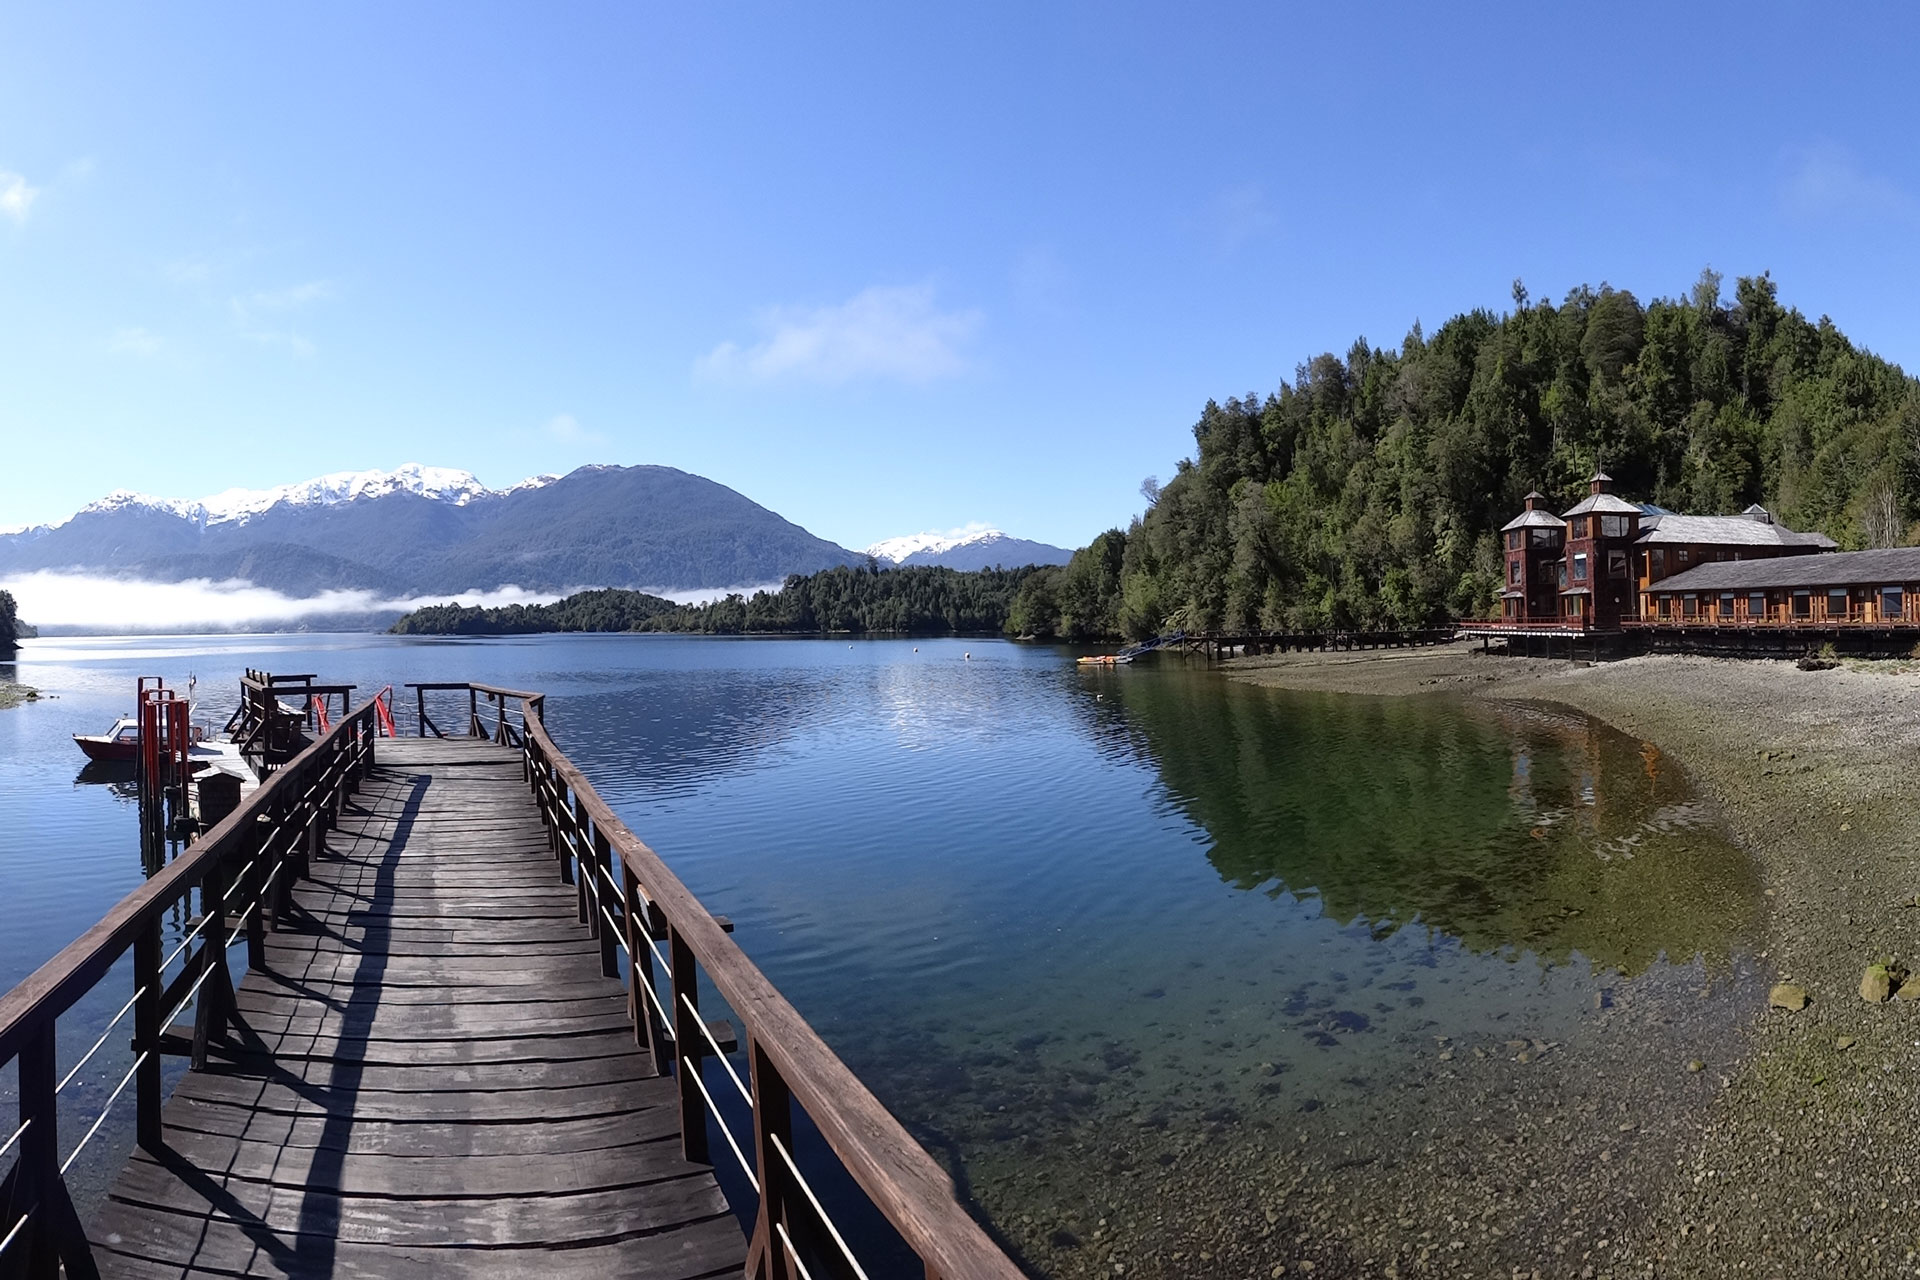 Puyuhuapi Lodge & Spa - Puerto Puyuhuapi, Chile